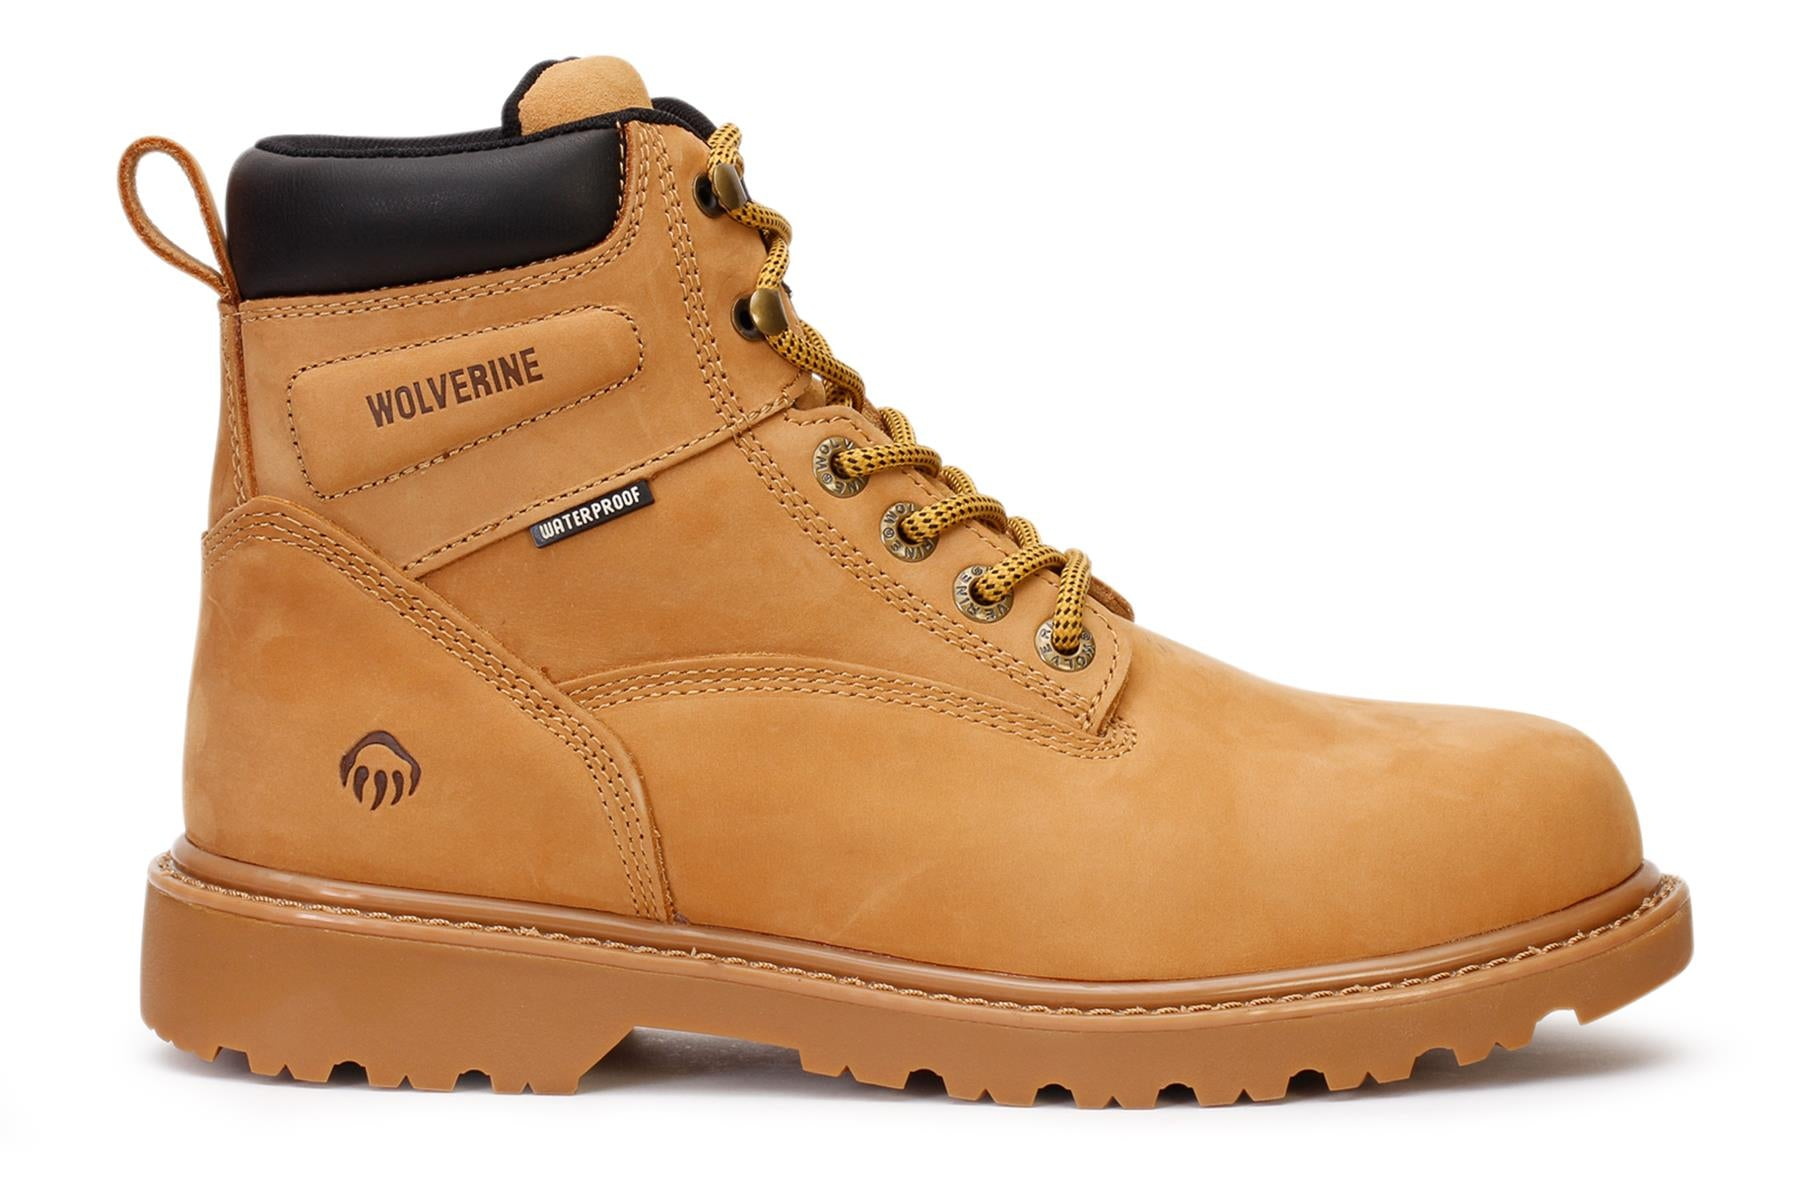 wolverine-mens-6-work-steel-toe-waterproof-boots-floorhand-wheat-w10632-main